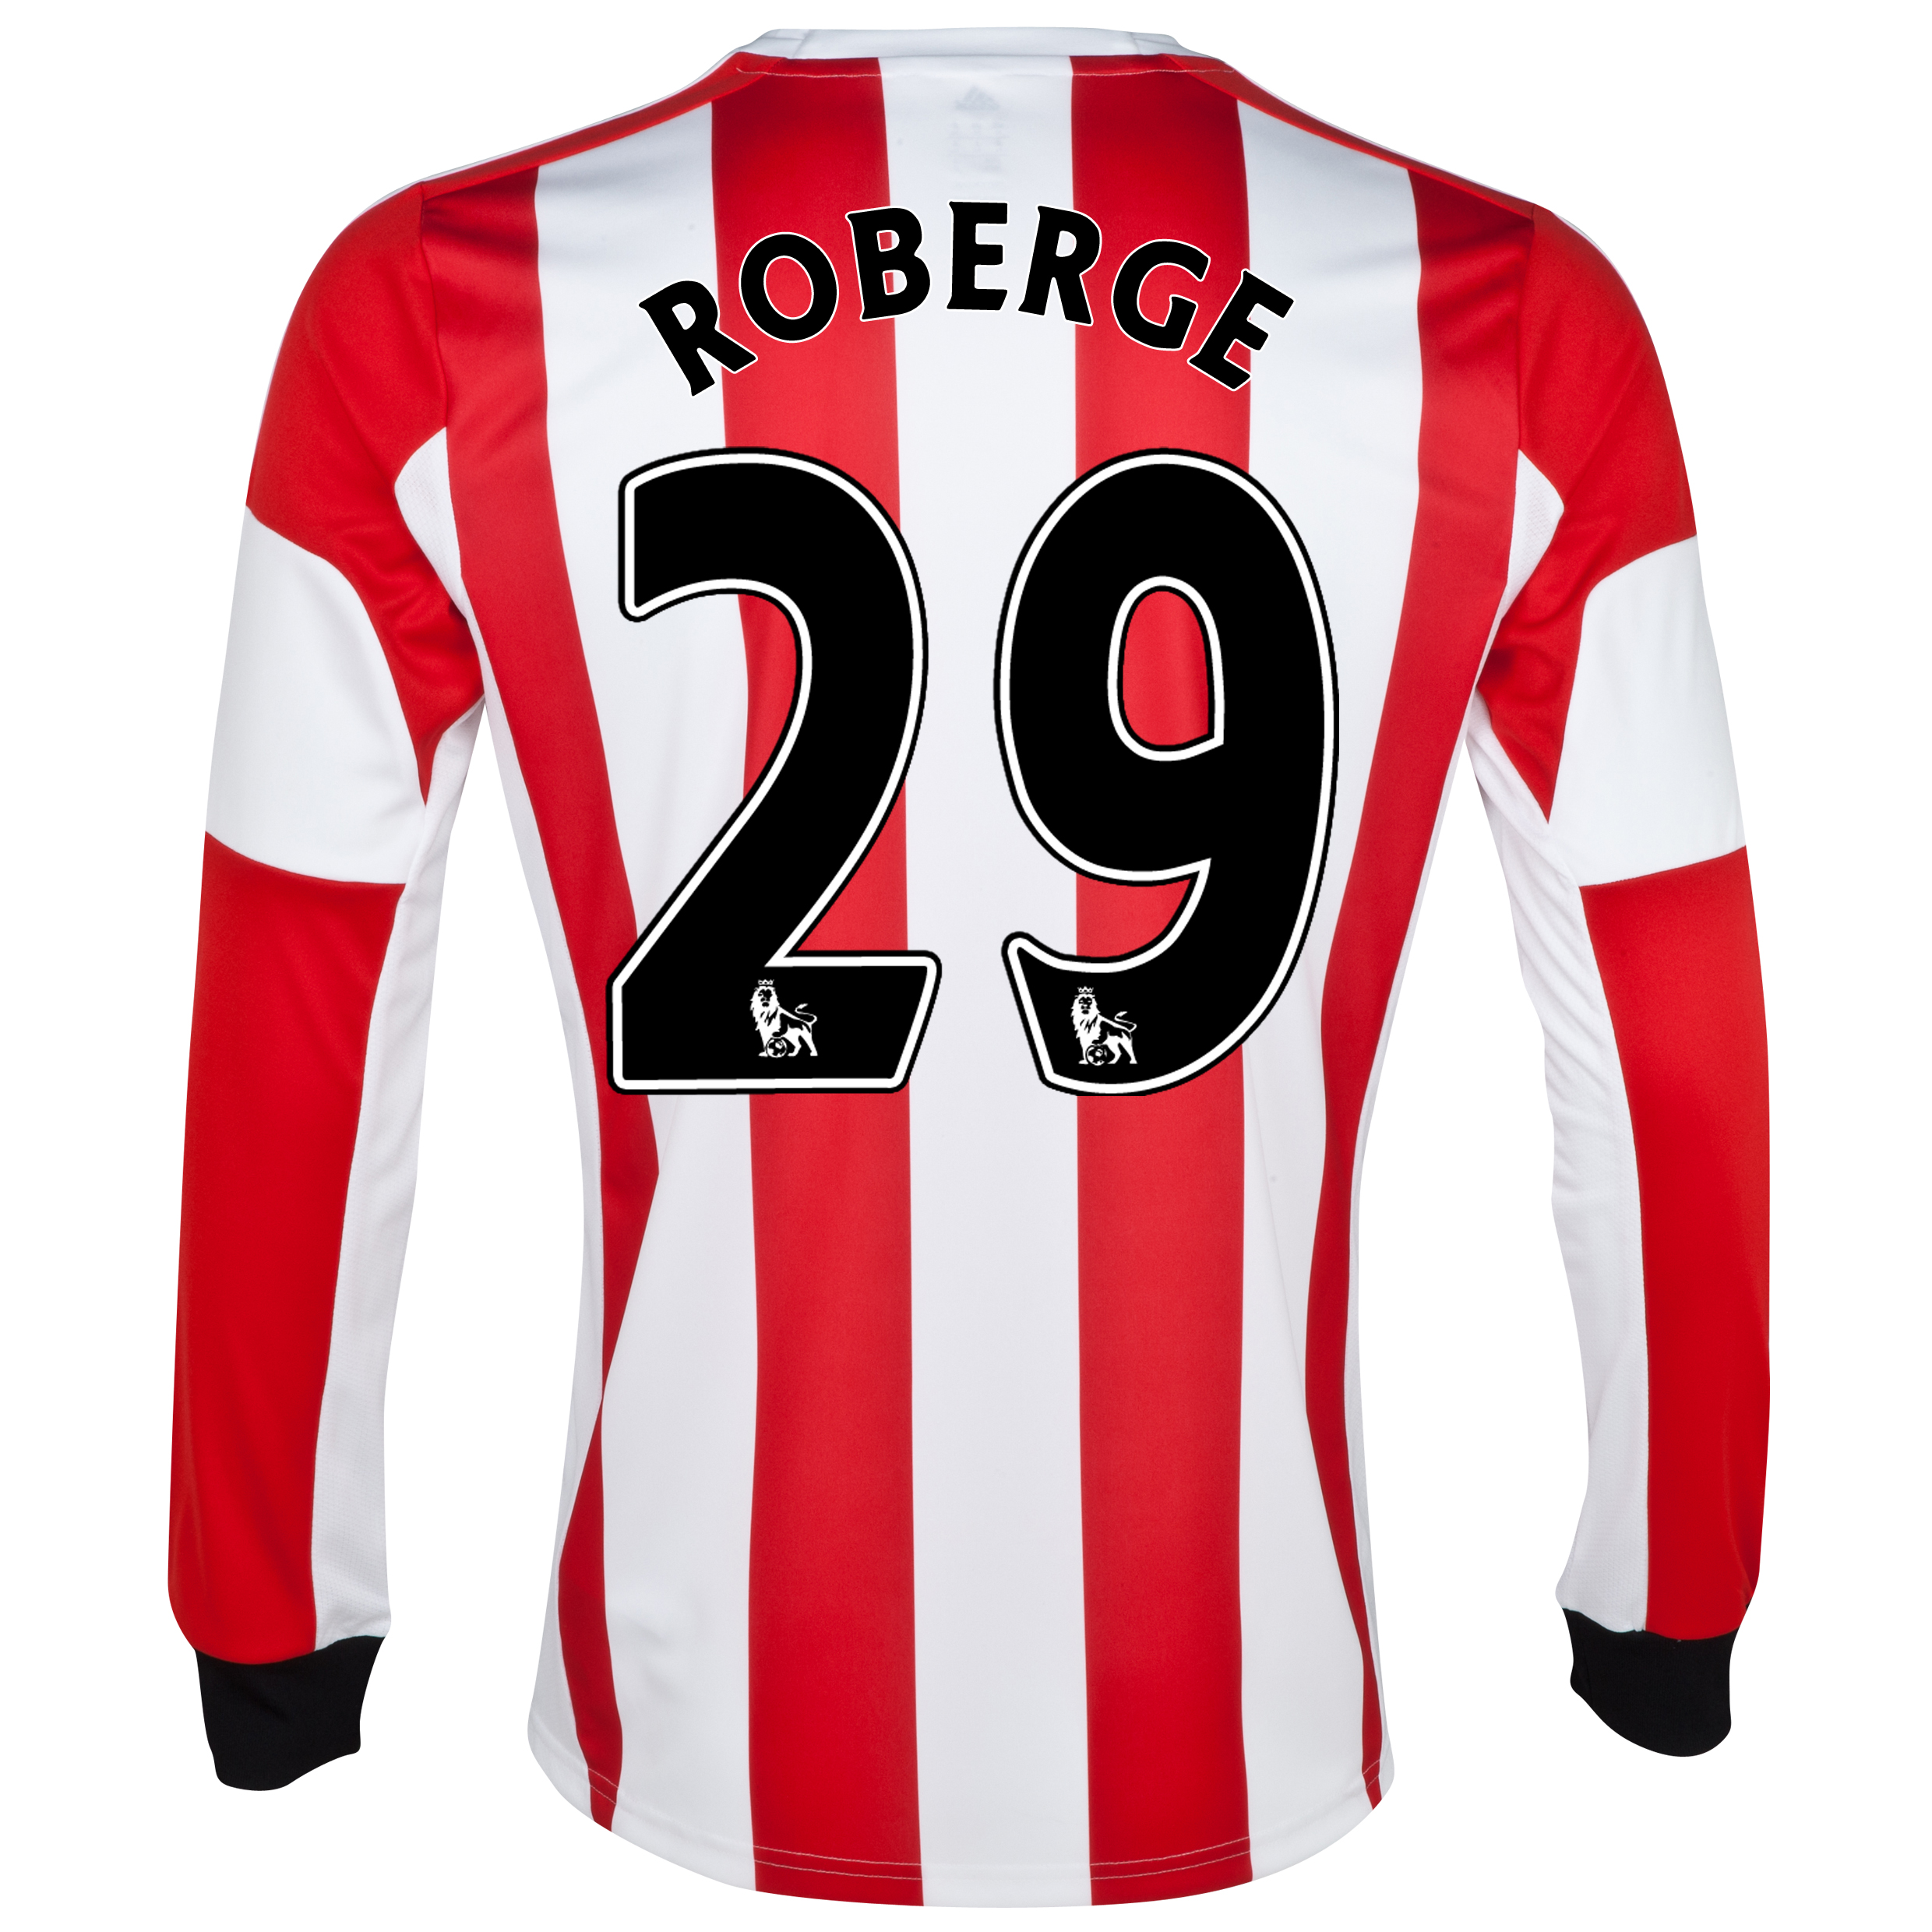 Sunderland Home Shirt 2013/14 - Long Sleeved with Roberge 29 printing